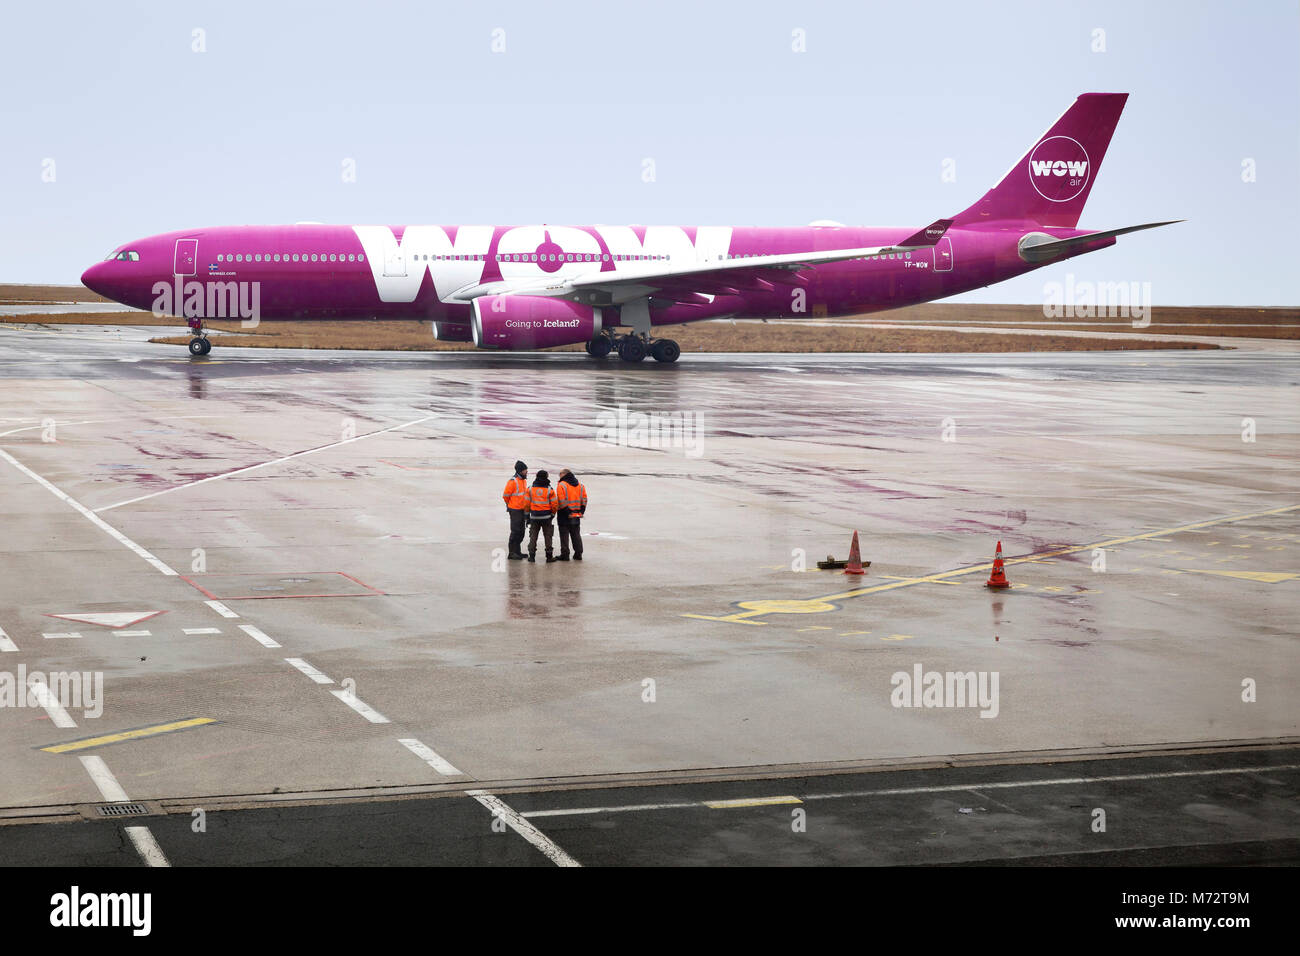 WOW Aribus passenger jet taxiing at Charles de Gaulle Airport in Paris, France.  WOW air was founded by Skuli Mogensen - Stock Image